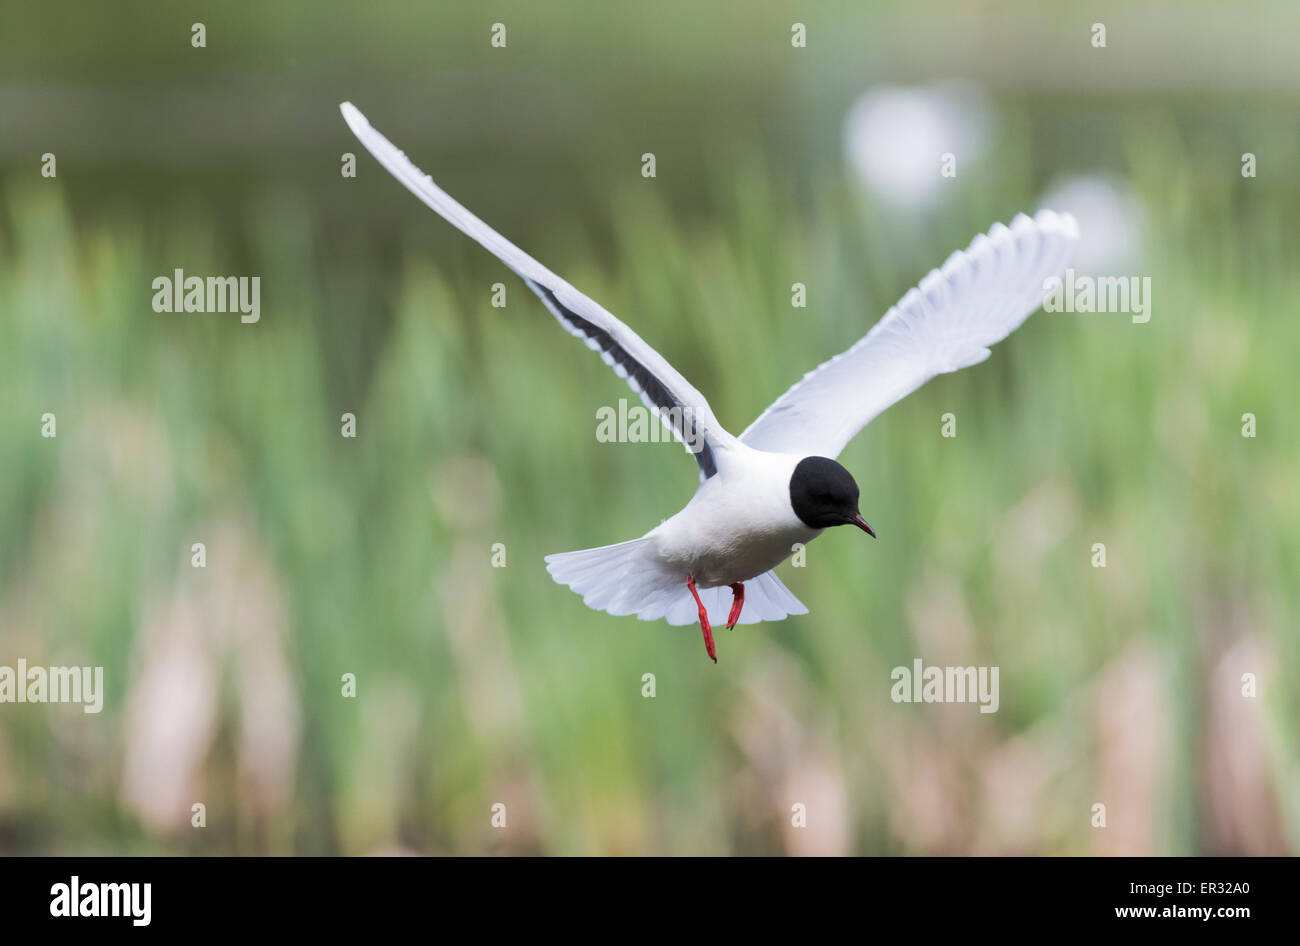 Little gull, Larus minutus hovering - Stock Image